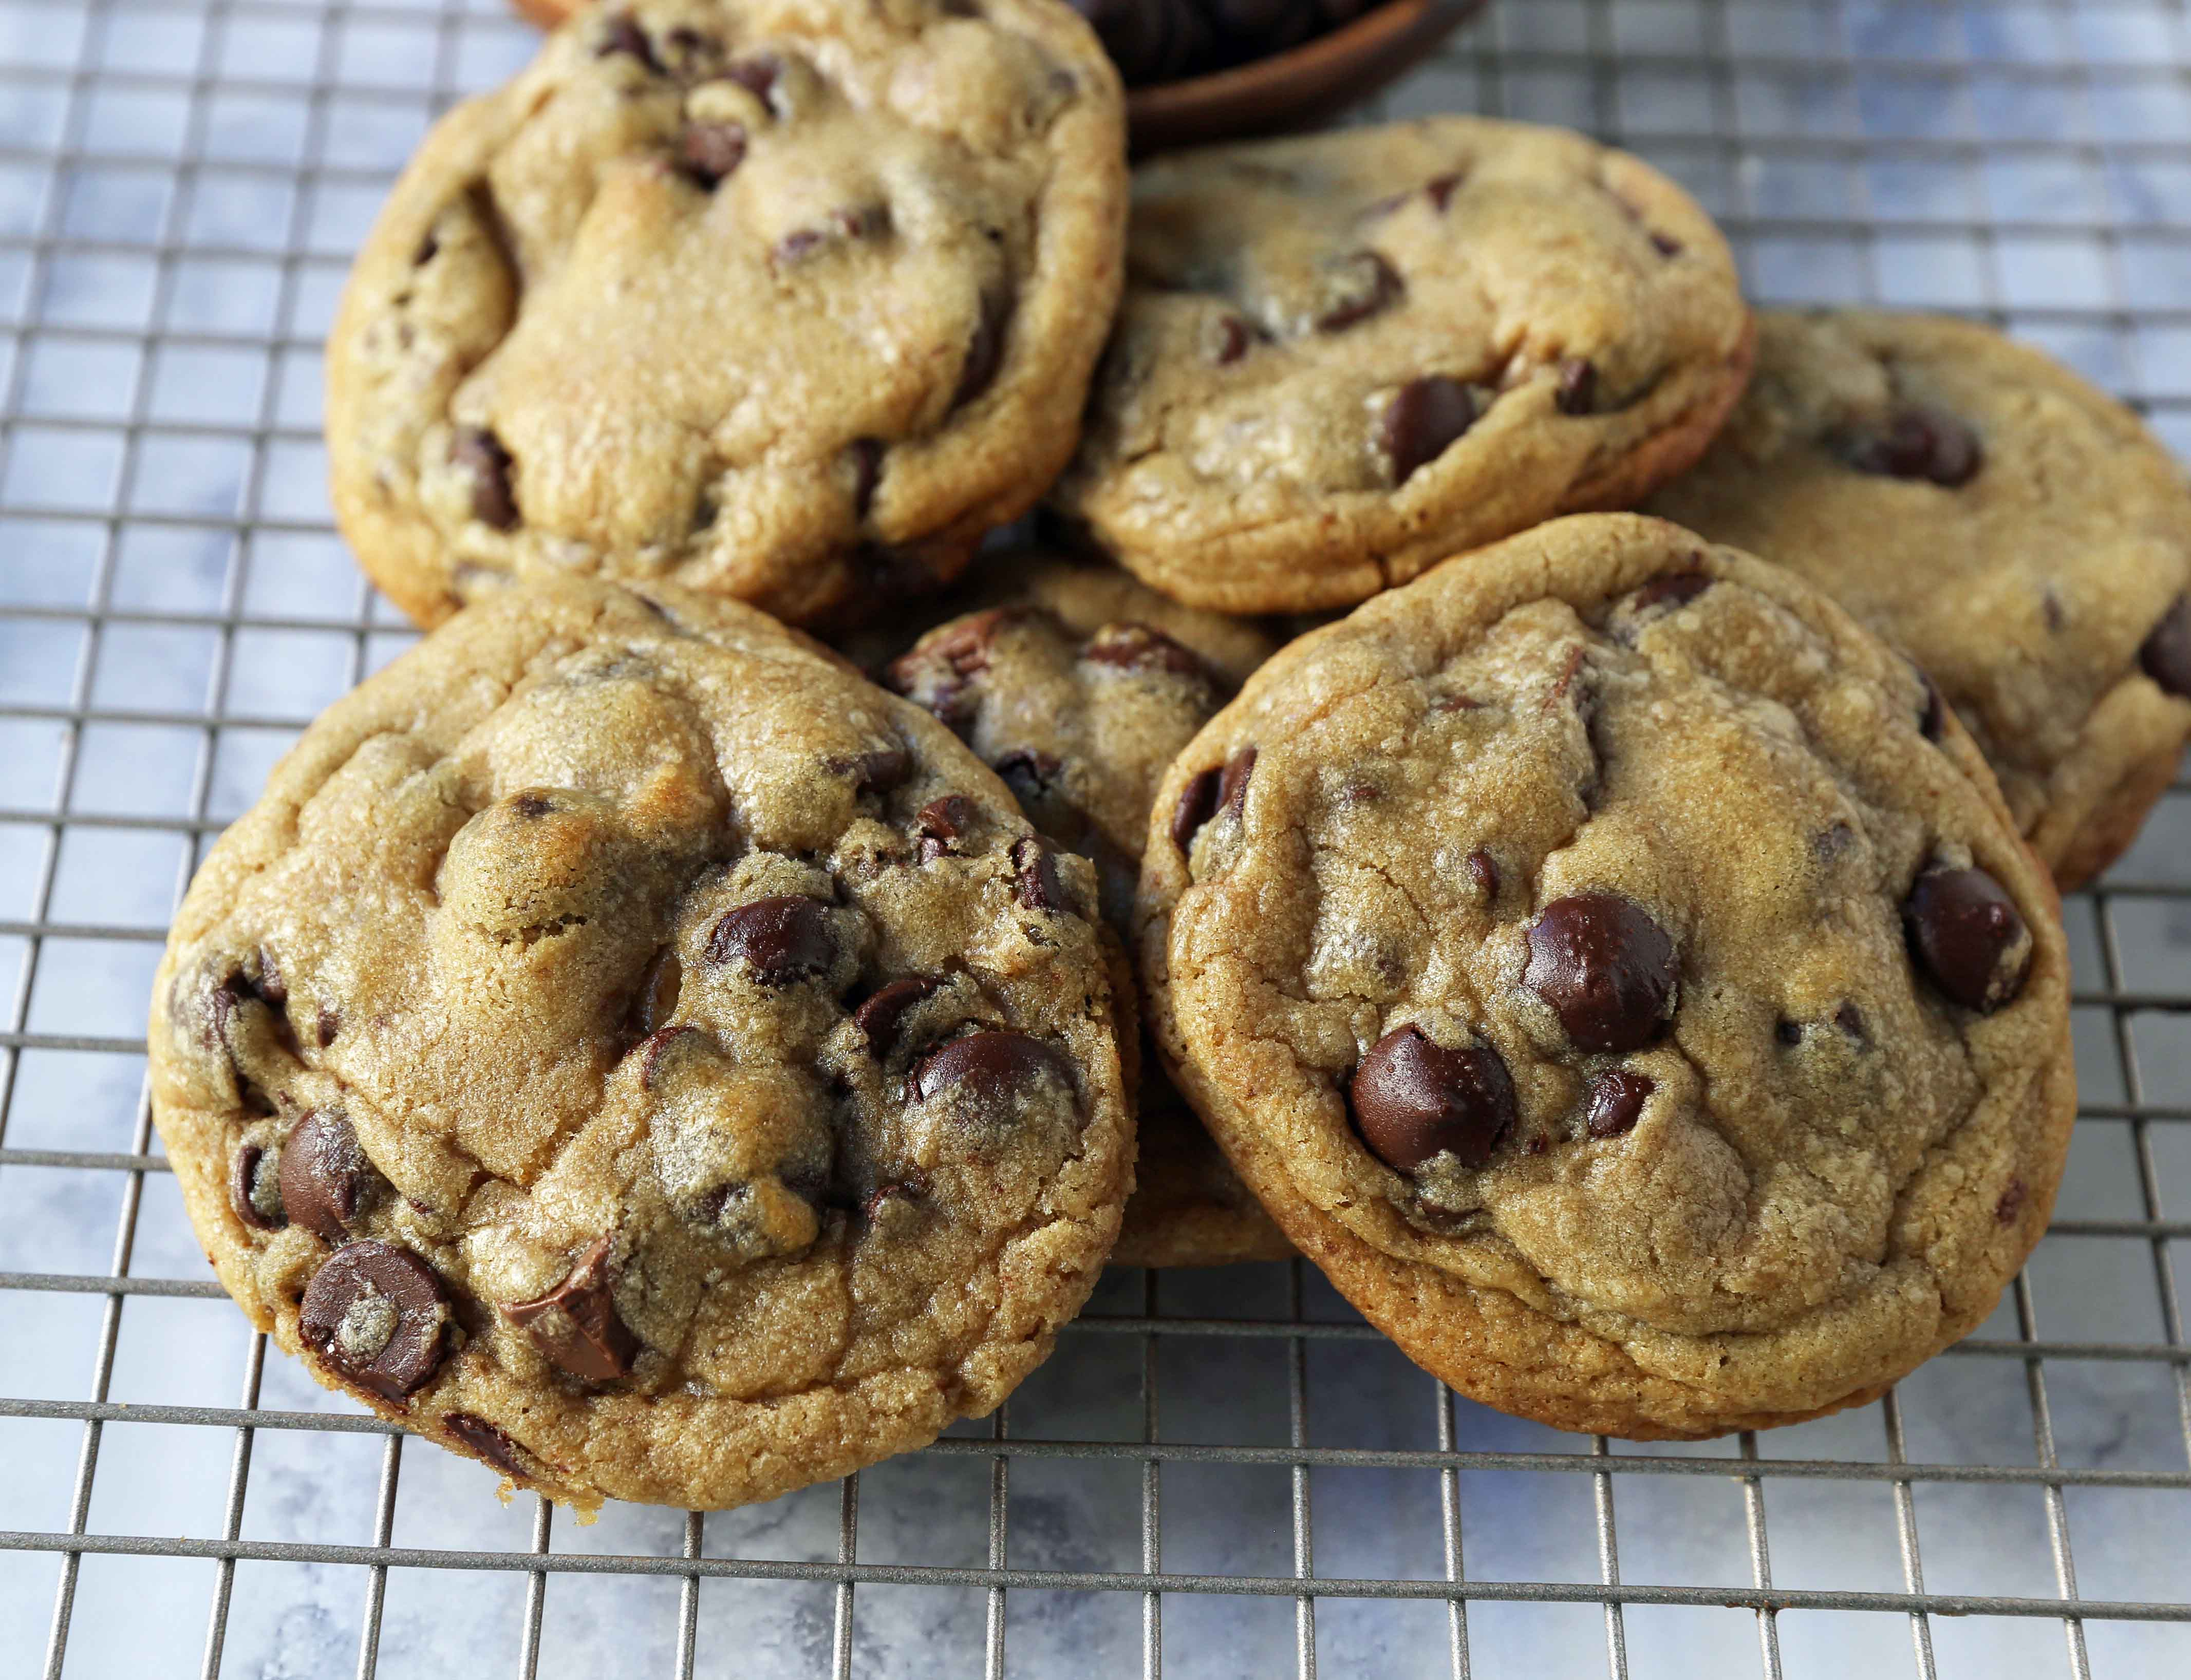 Brown Butter Chocolate Chip Cookies. How to make the best chocolate chip cookies. www.modernhoney.com #chocolatechipcookies #brownbuttercookies #chocolatechipcookie #cookies #cookie